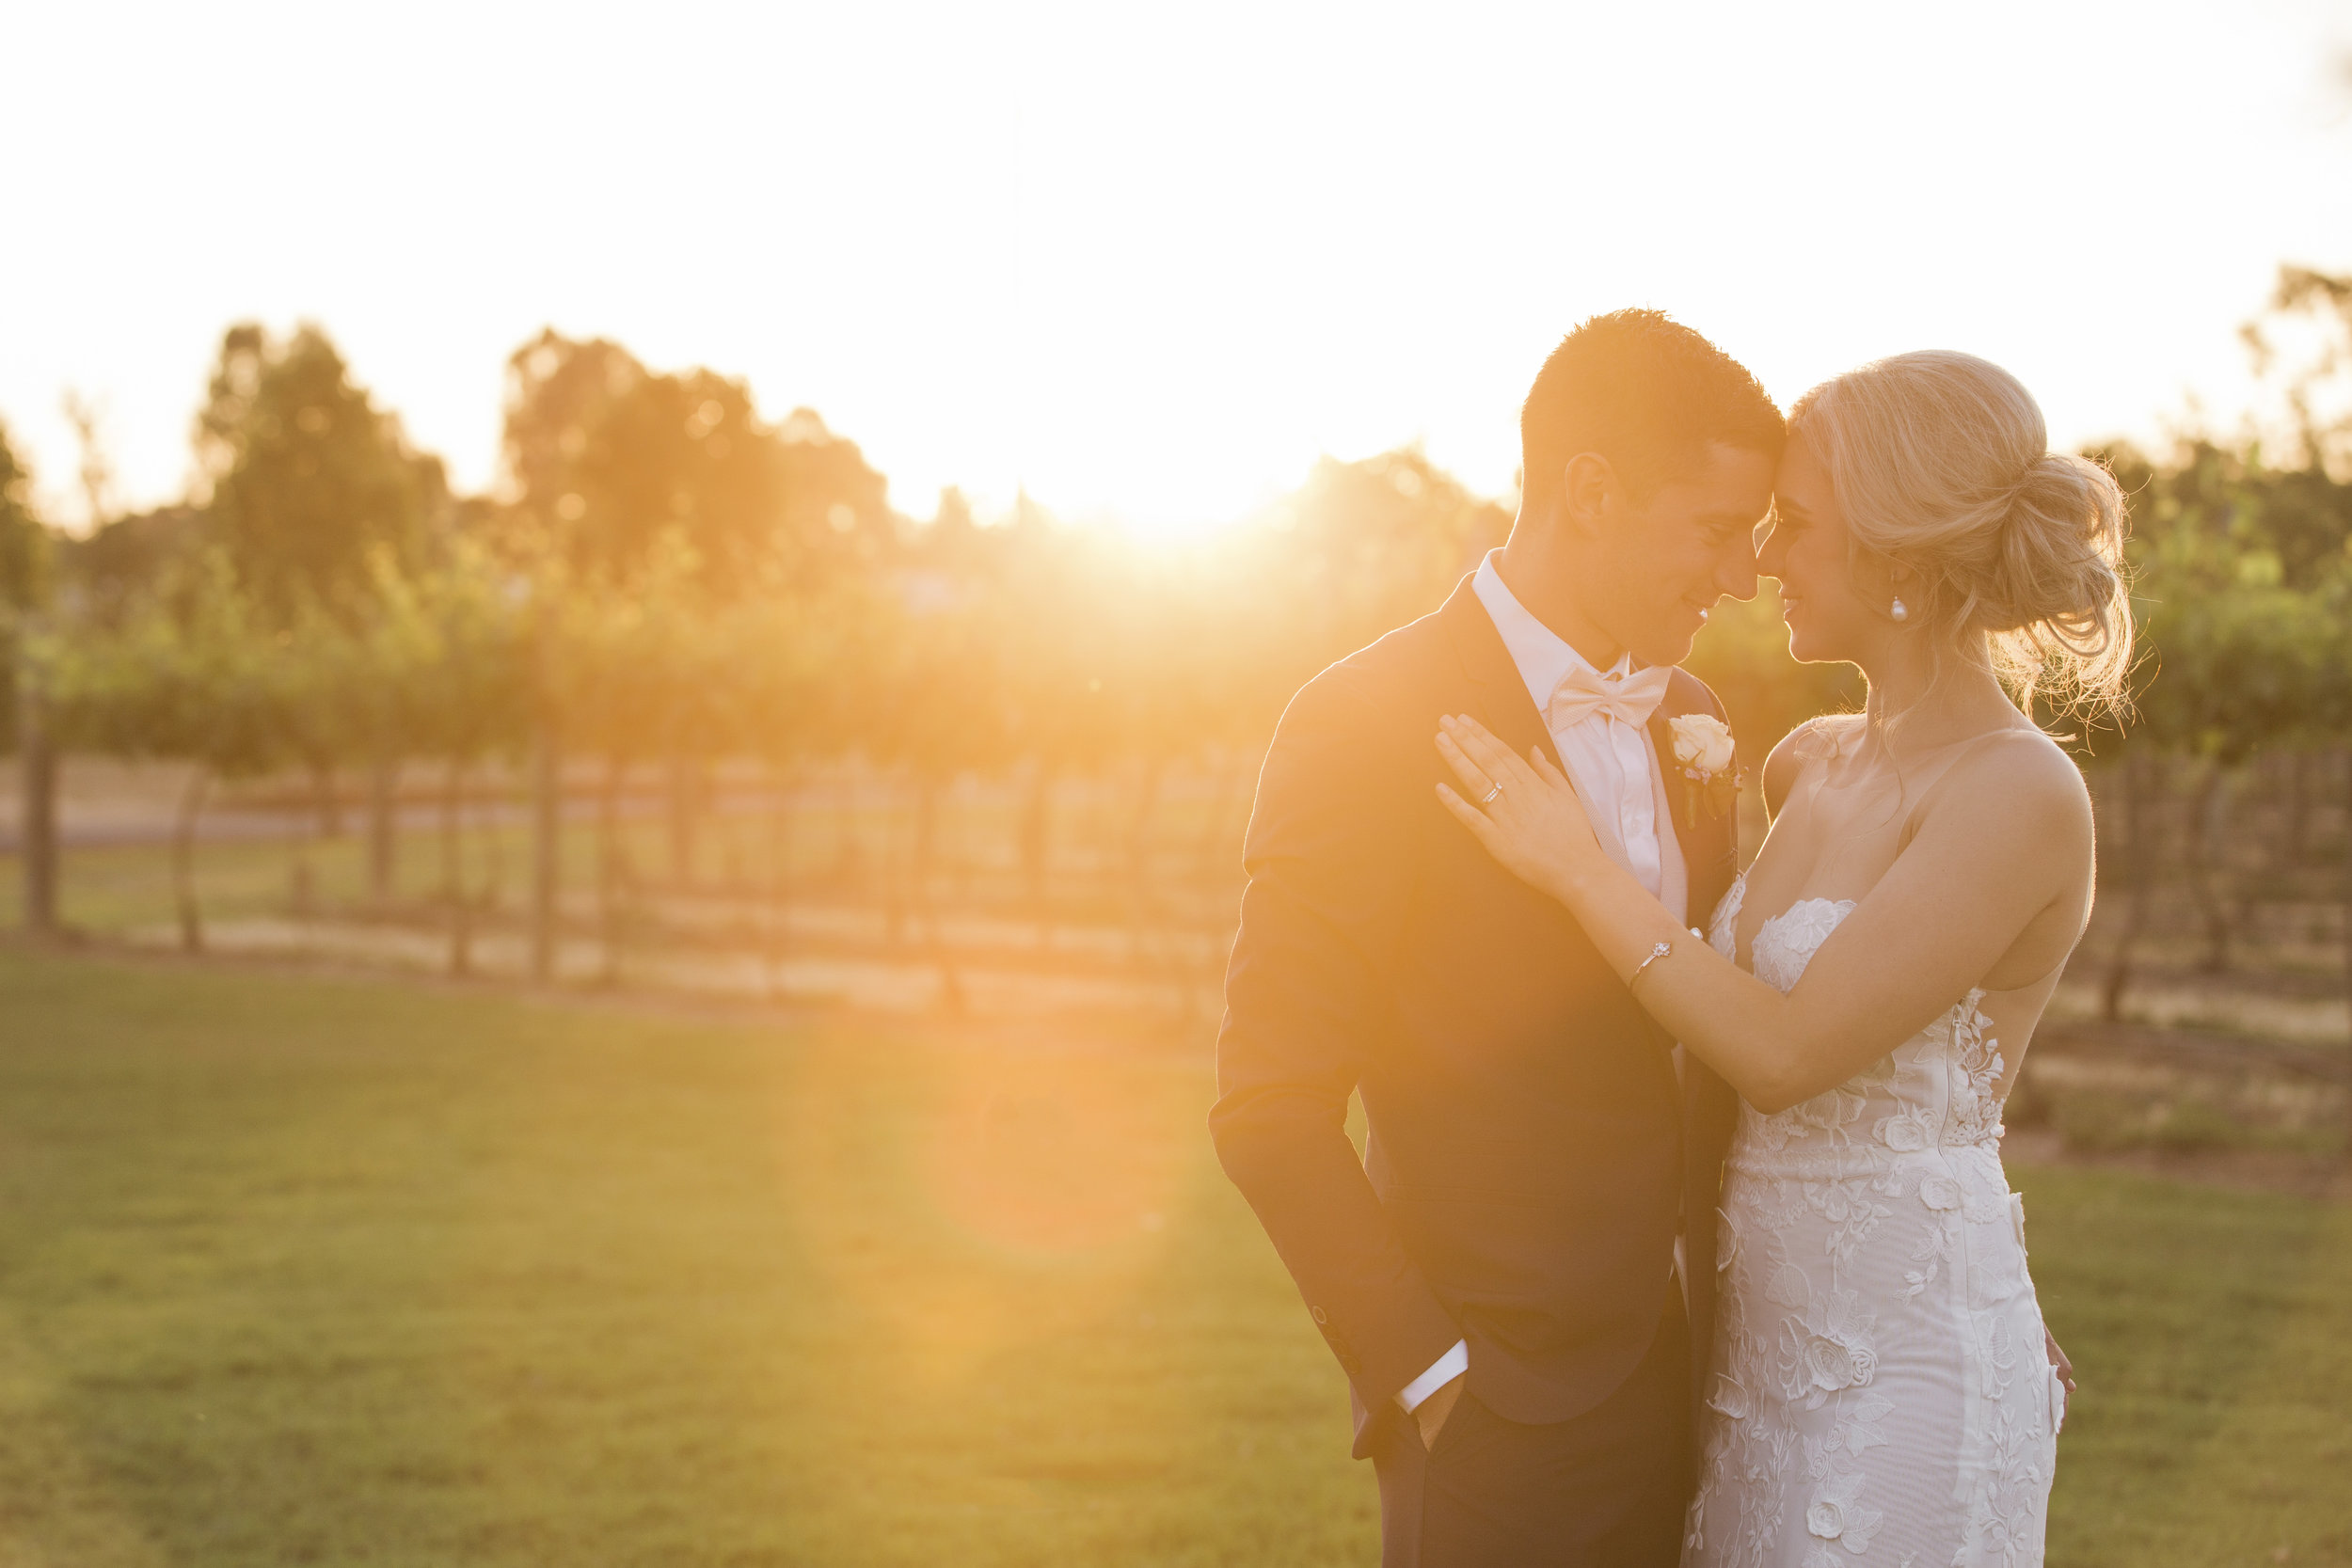 love by shae, wedding photographer, echuca wedding photographer, morrisons wedding photographer, echuca wedding, echuca wedding photographer, echuca bride